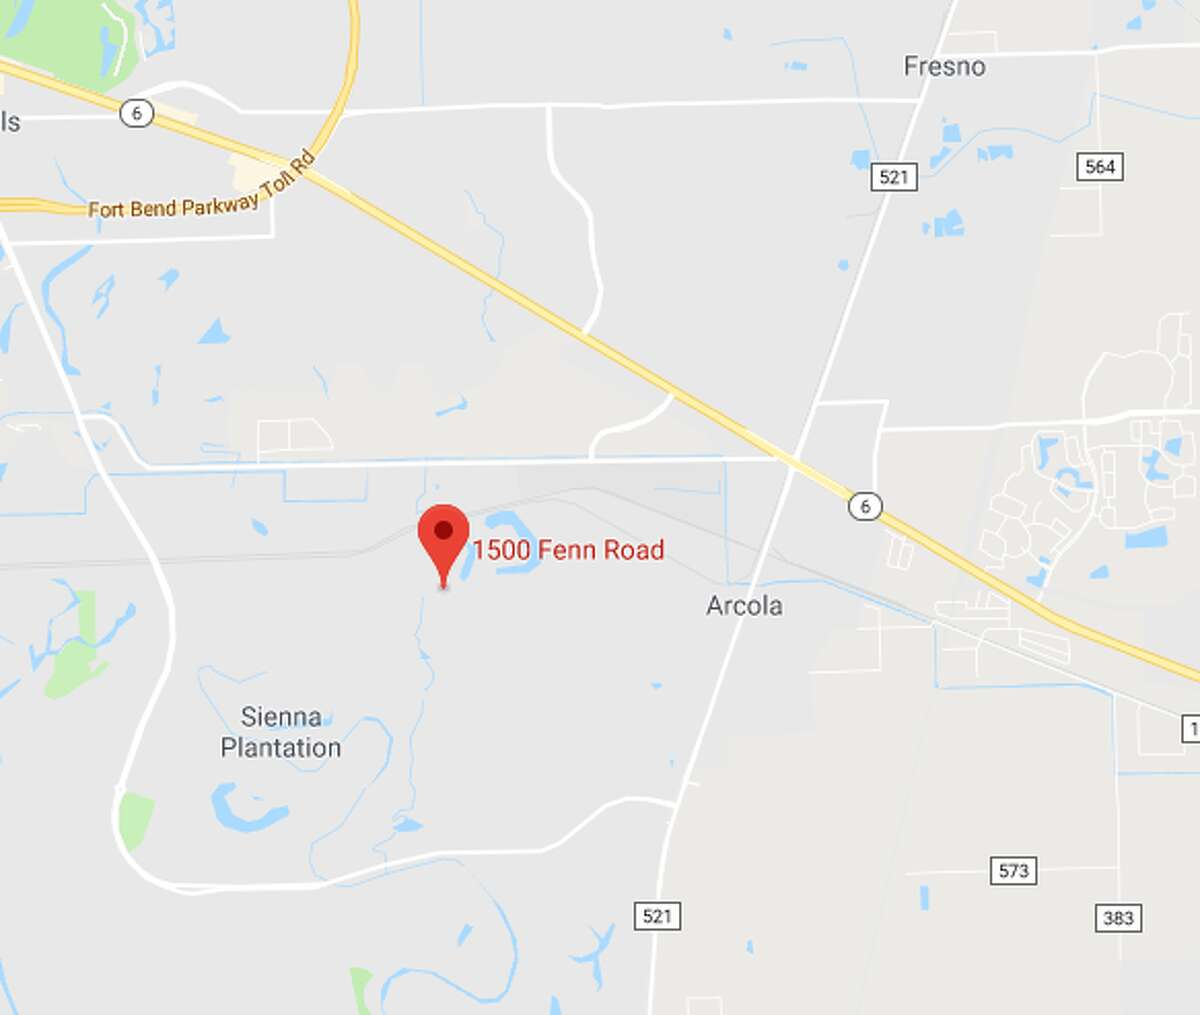 A woman was crushed by a gate Thursday, Aug. 29, in Arcola, deputies said.